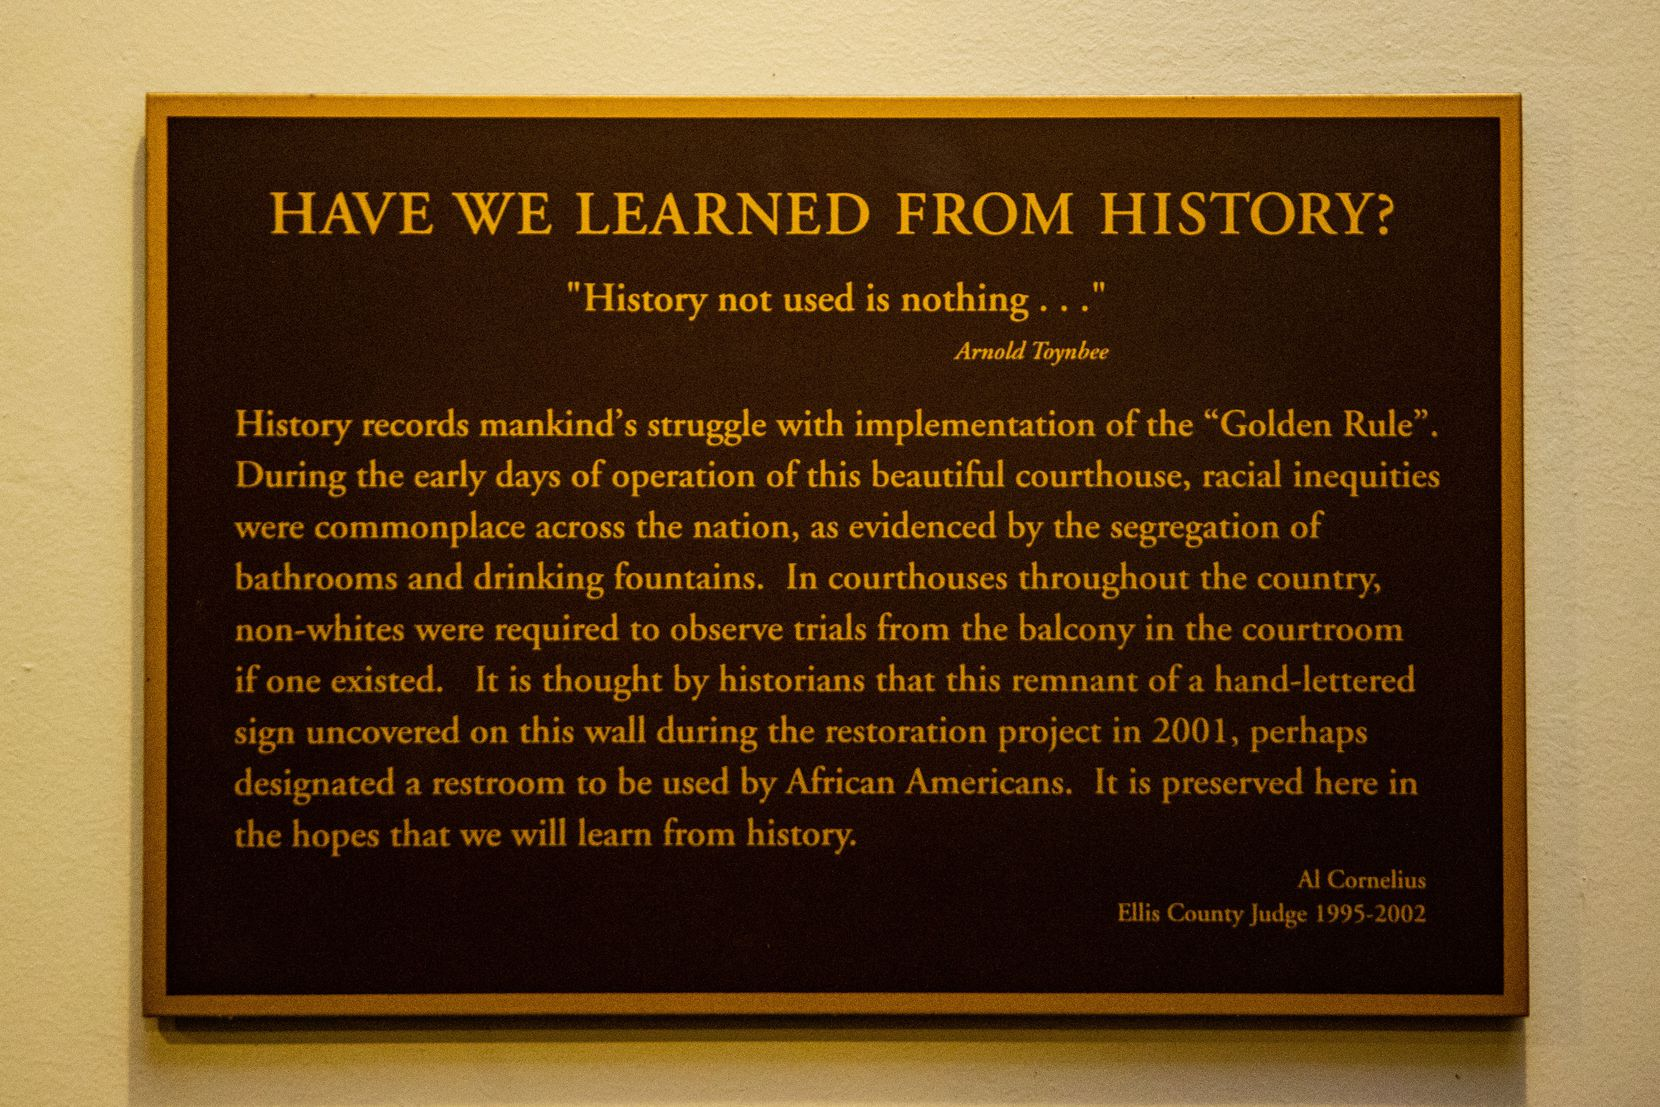 """A historical marker placed under a sign that reads """"NEGROES"""" is at the Ellis County Courthouse in Waxahachie."""